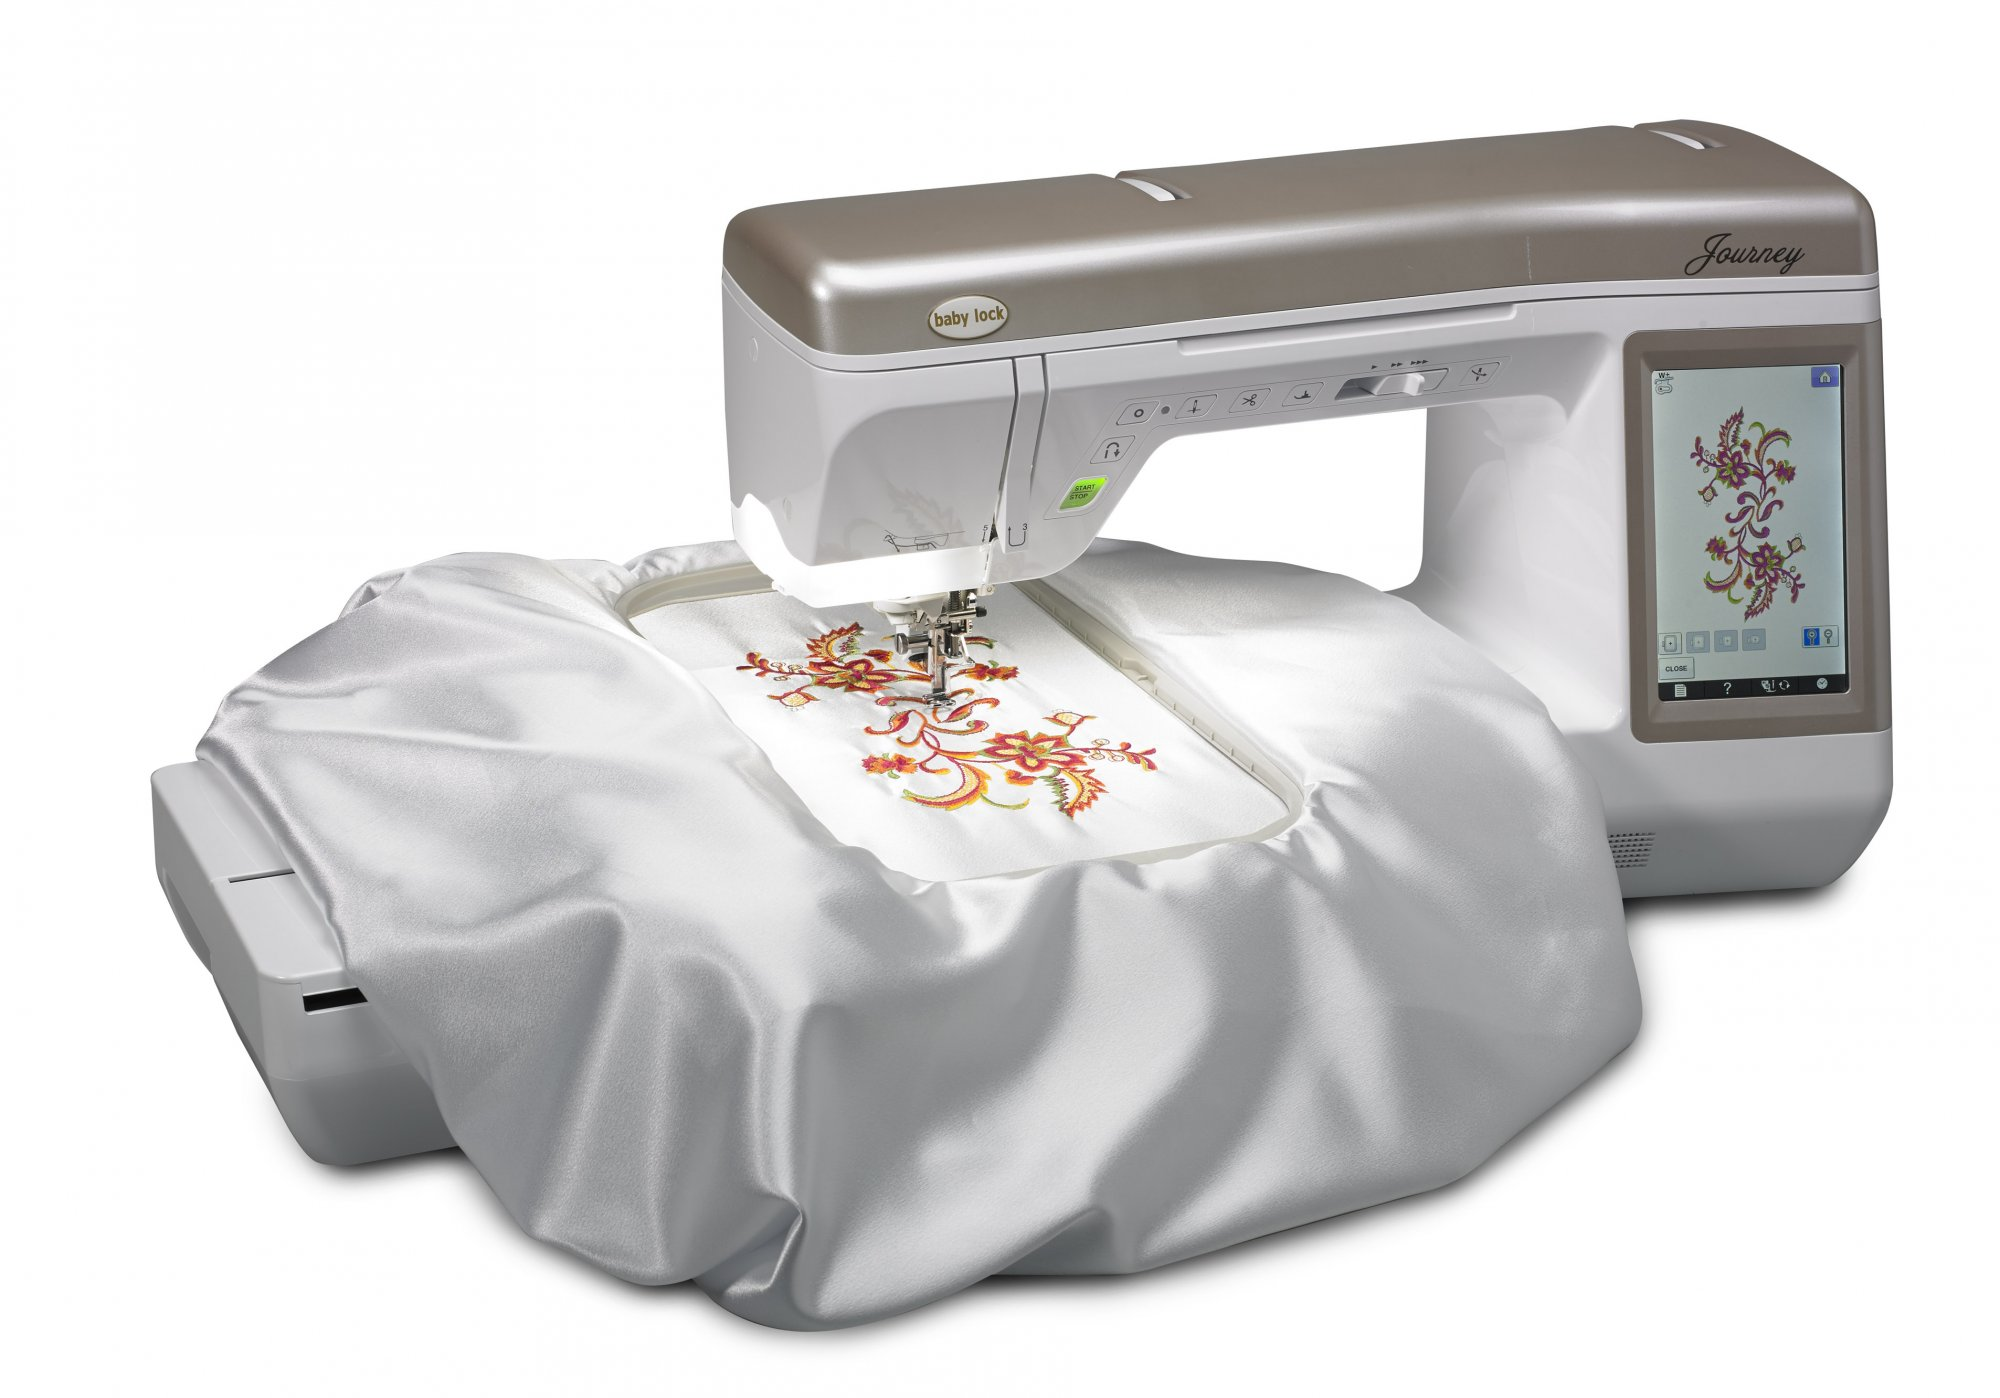 Journey Embroidery Sewing Machine